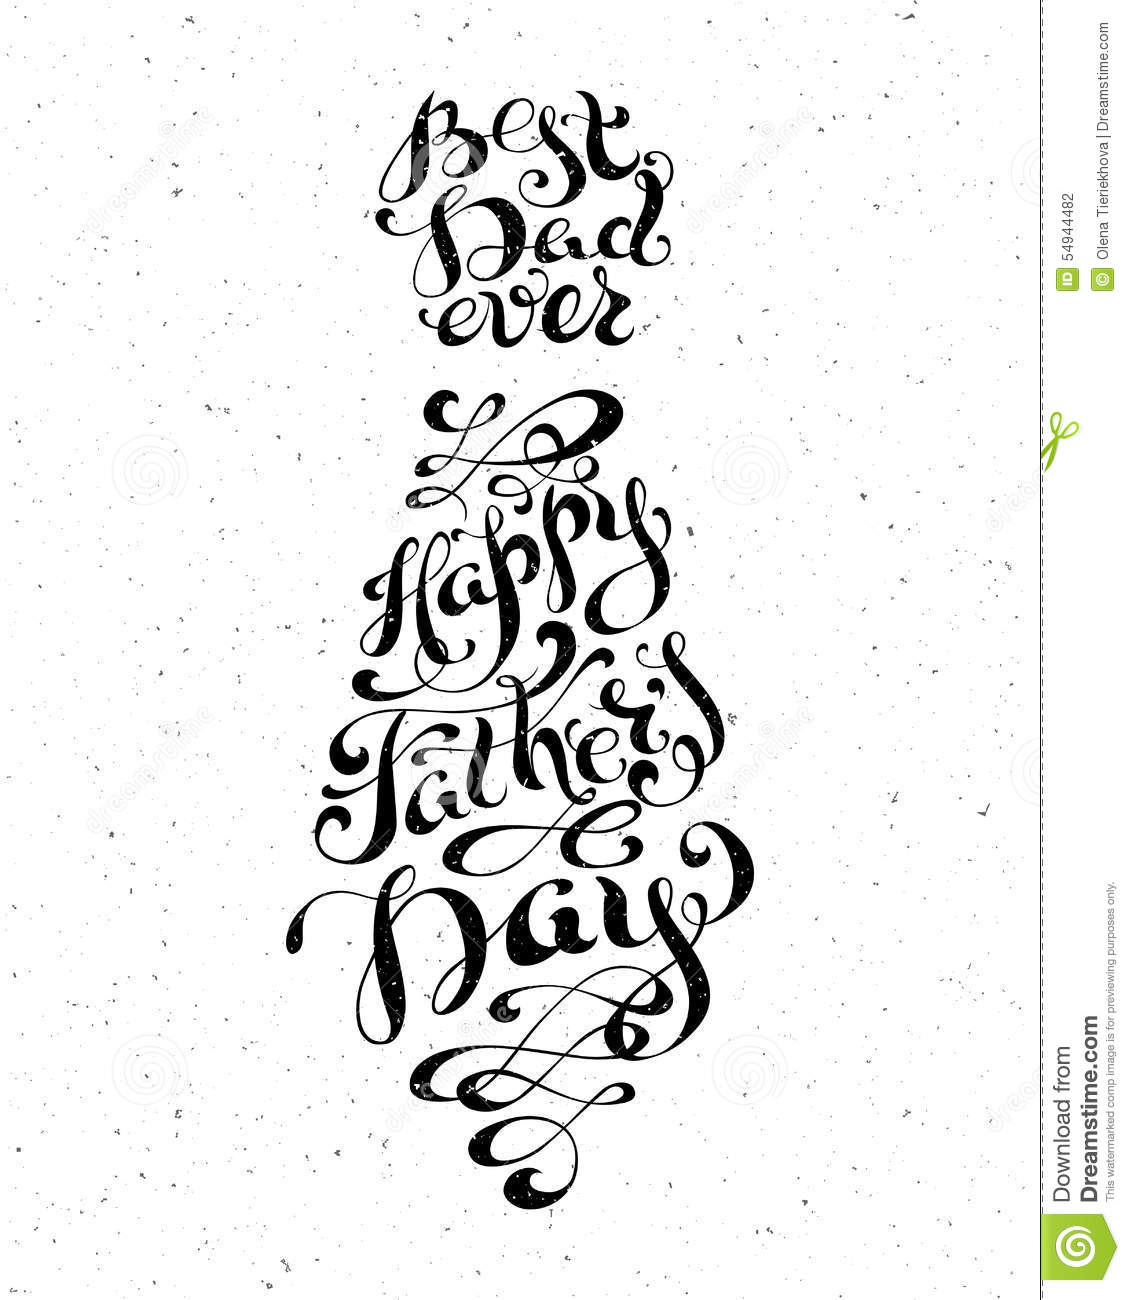 Best dad ever happy fathers day stock vector illustration of best dad ever happy father s day kristyandbryce Choice Image